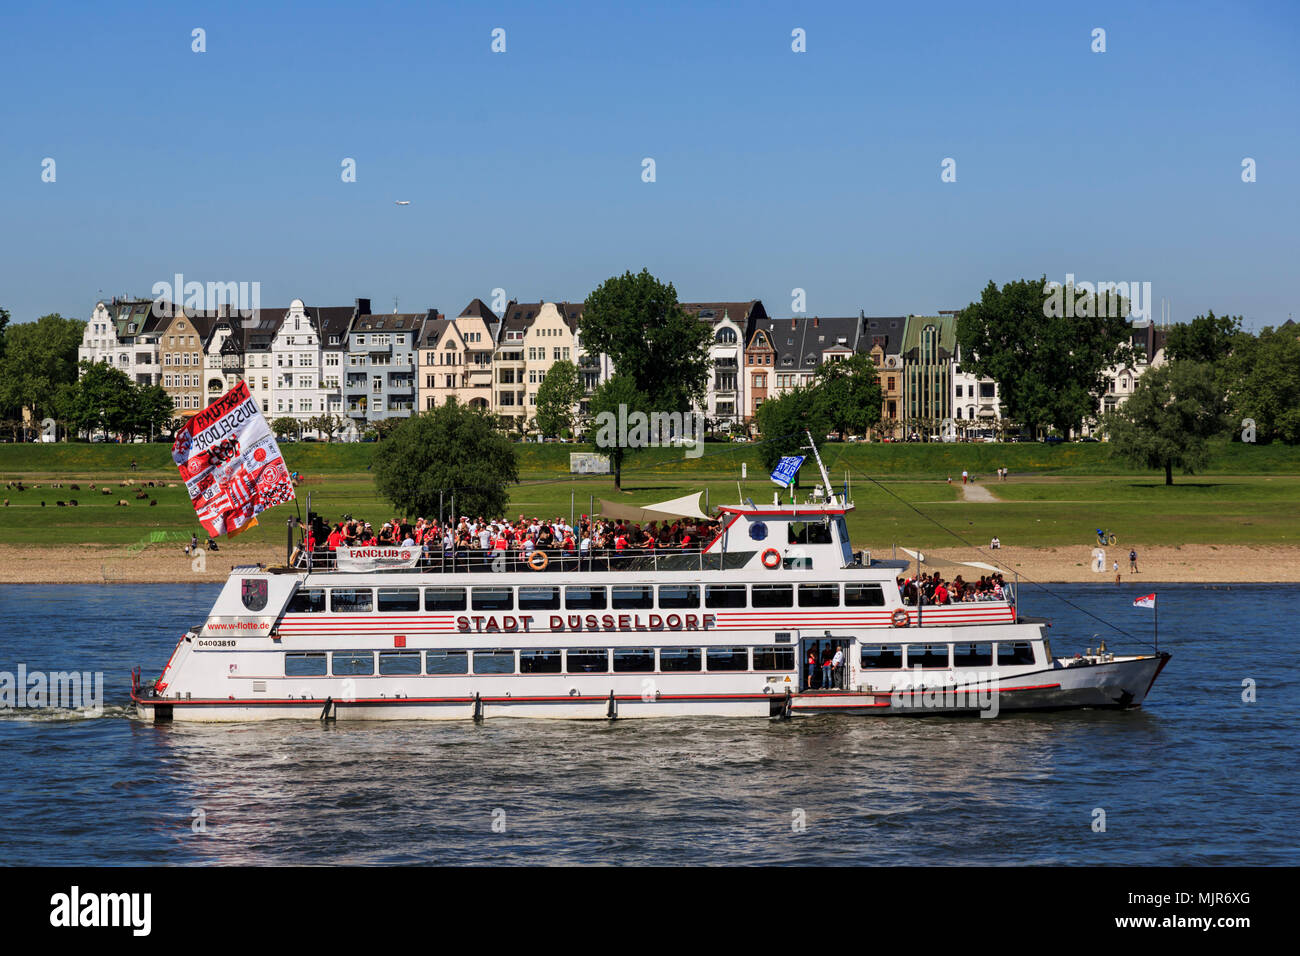 Düsseldorf, Germany. 6 May 2018. Fans of football club Fortuna Düsseldorf celebrate the promotion to the Bundesliga with a cruise on a pleasure boat on the River Rhine. Photo: 51North/Alamy Live News - Stock Image